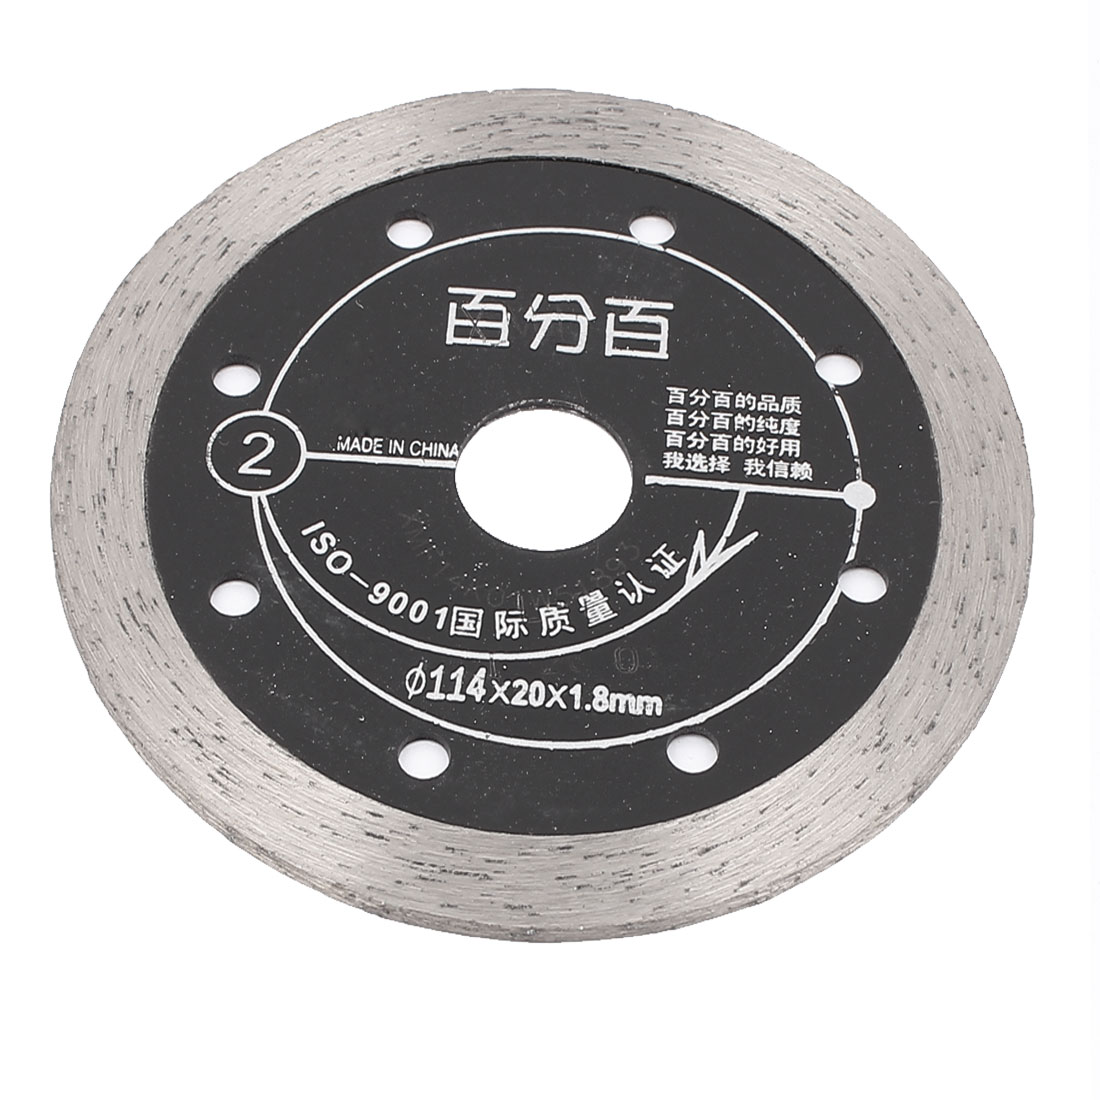 114mm x 20mm x 1.8mm Grinding Cutting Disc Wheel Black for Stainless Steel